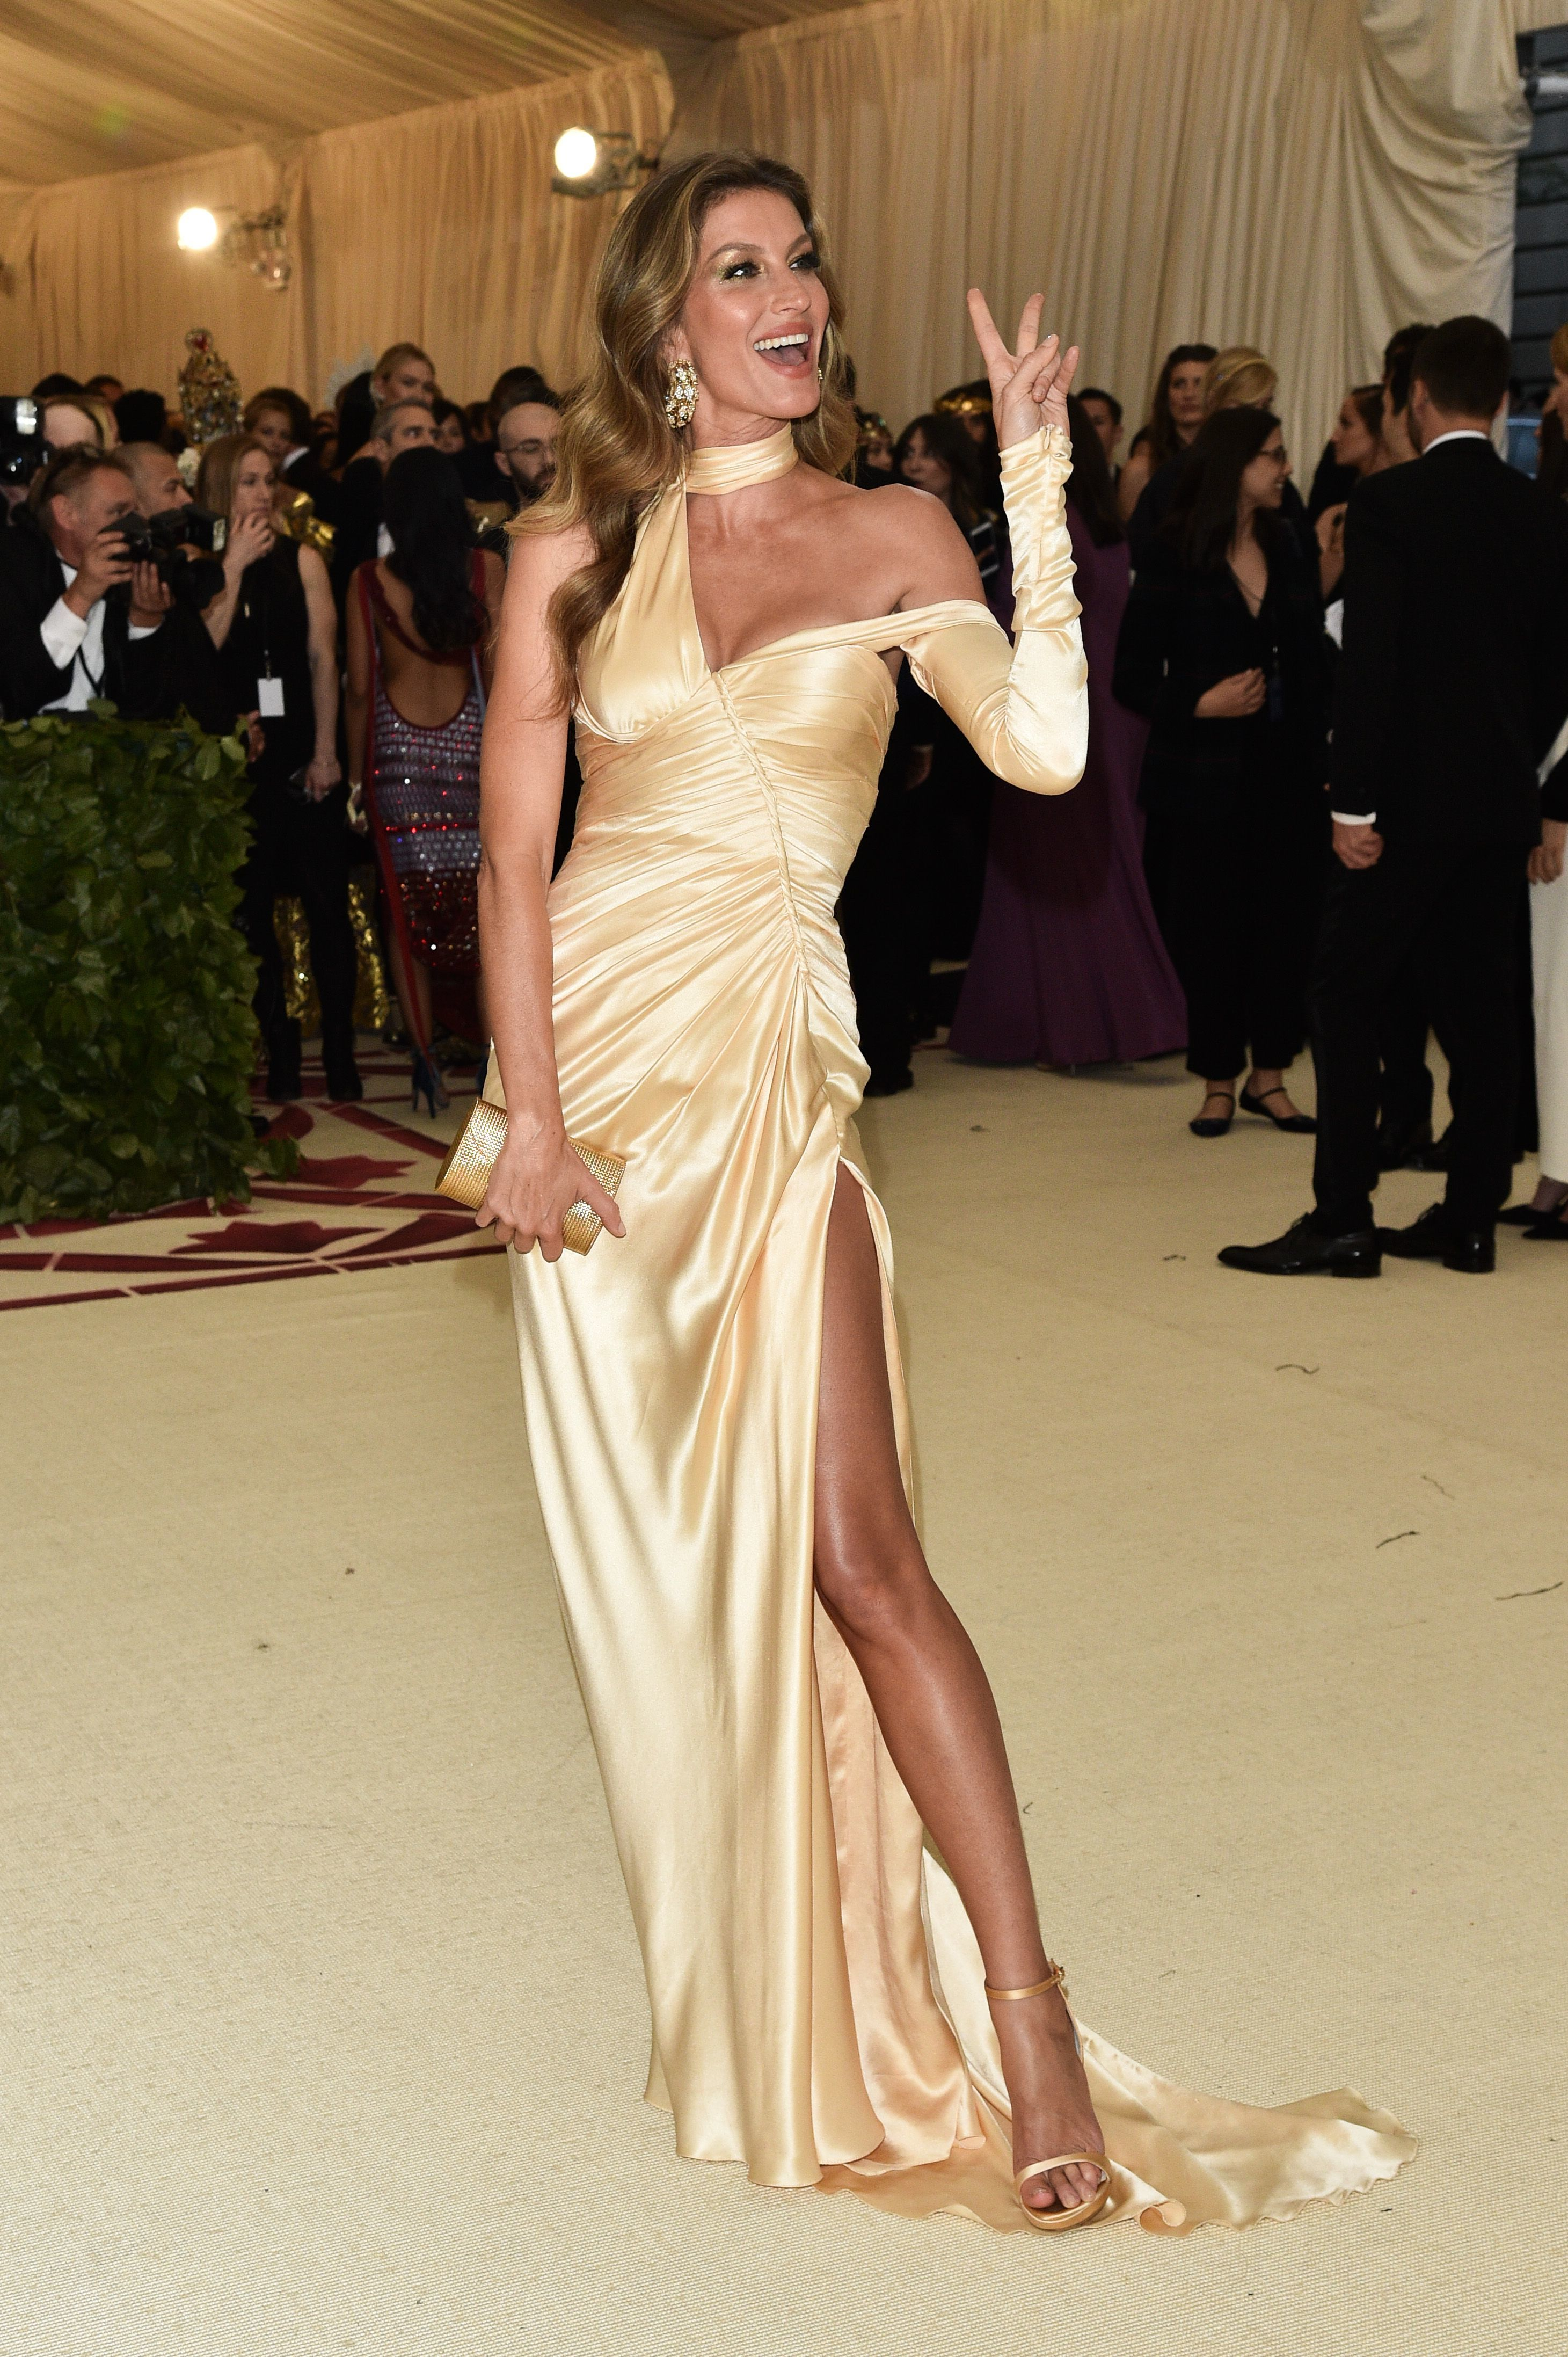 Gisele Bundchen attends The Metropolitan Museum of Art's Costume Institute Benefit celebrating the opening of Heavenly Bodies: Fashion and the Catholic Imagination in New York City on May 7, 2018.